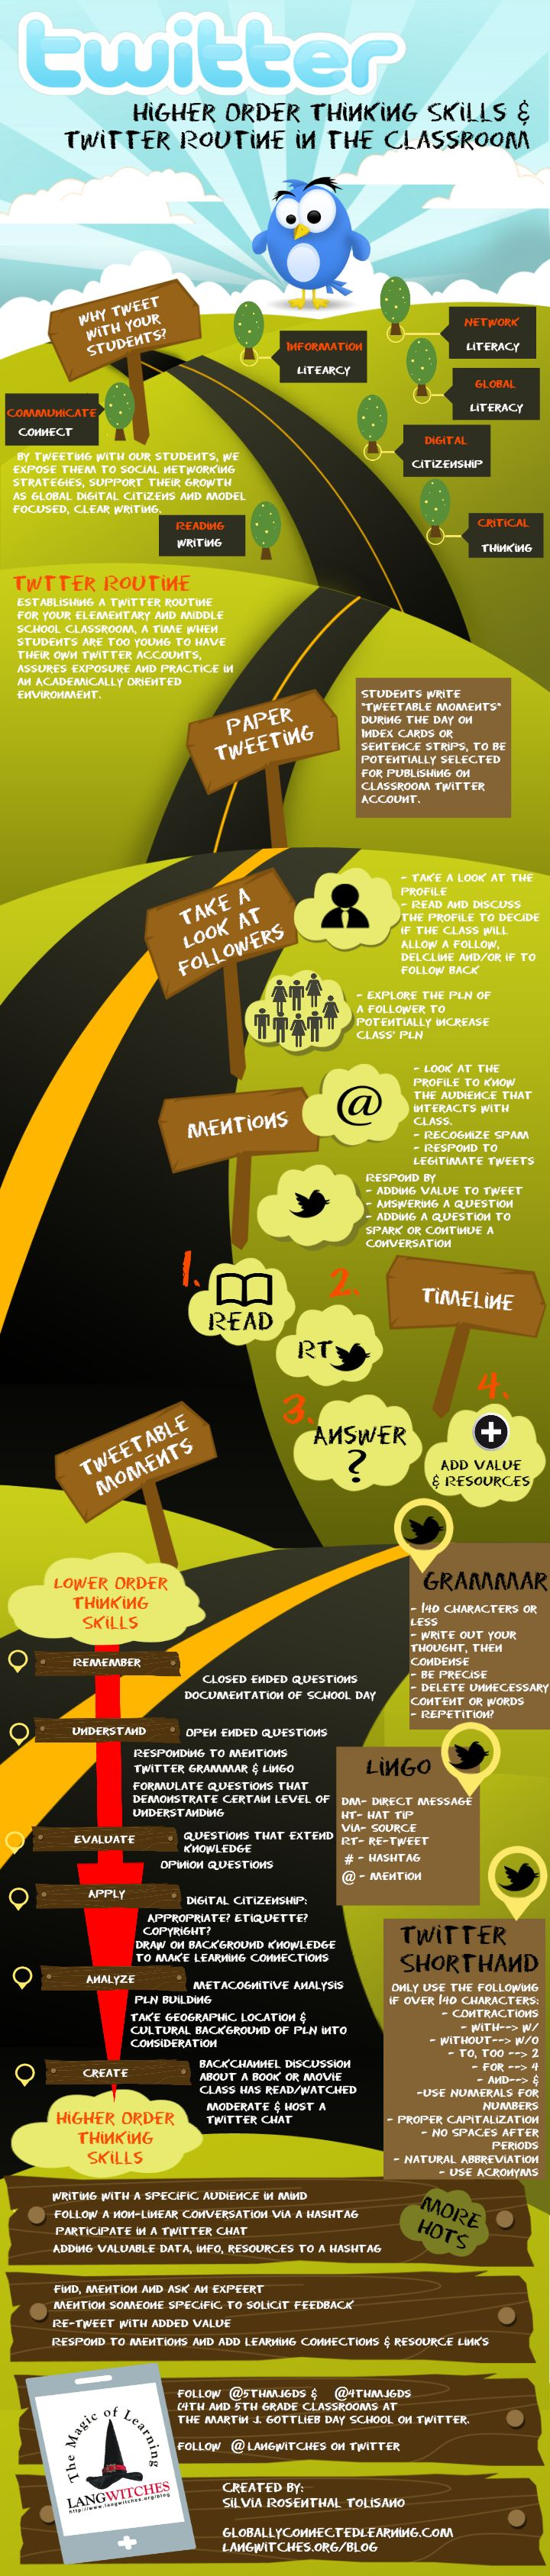 Teachers Roadmap to The Use of Twitter in Education